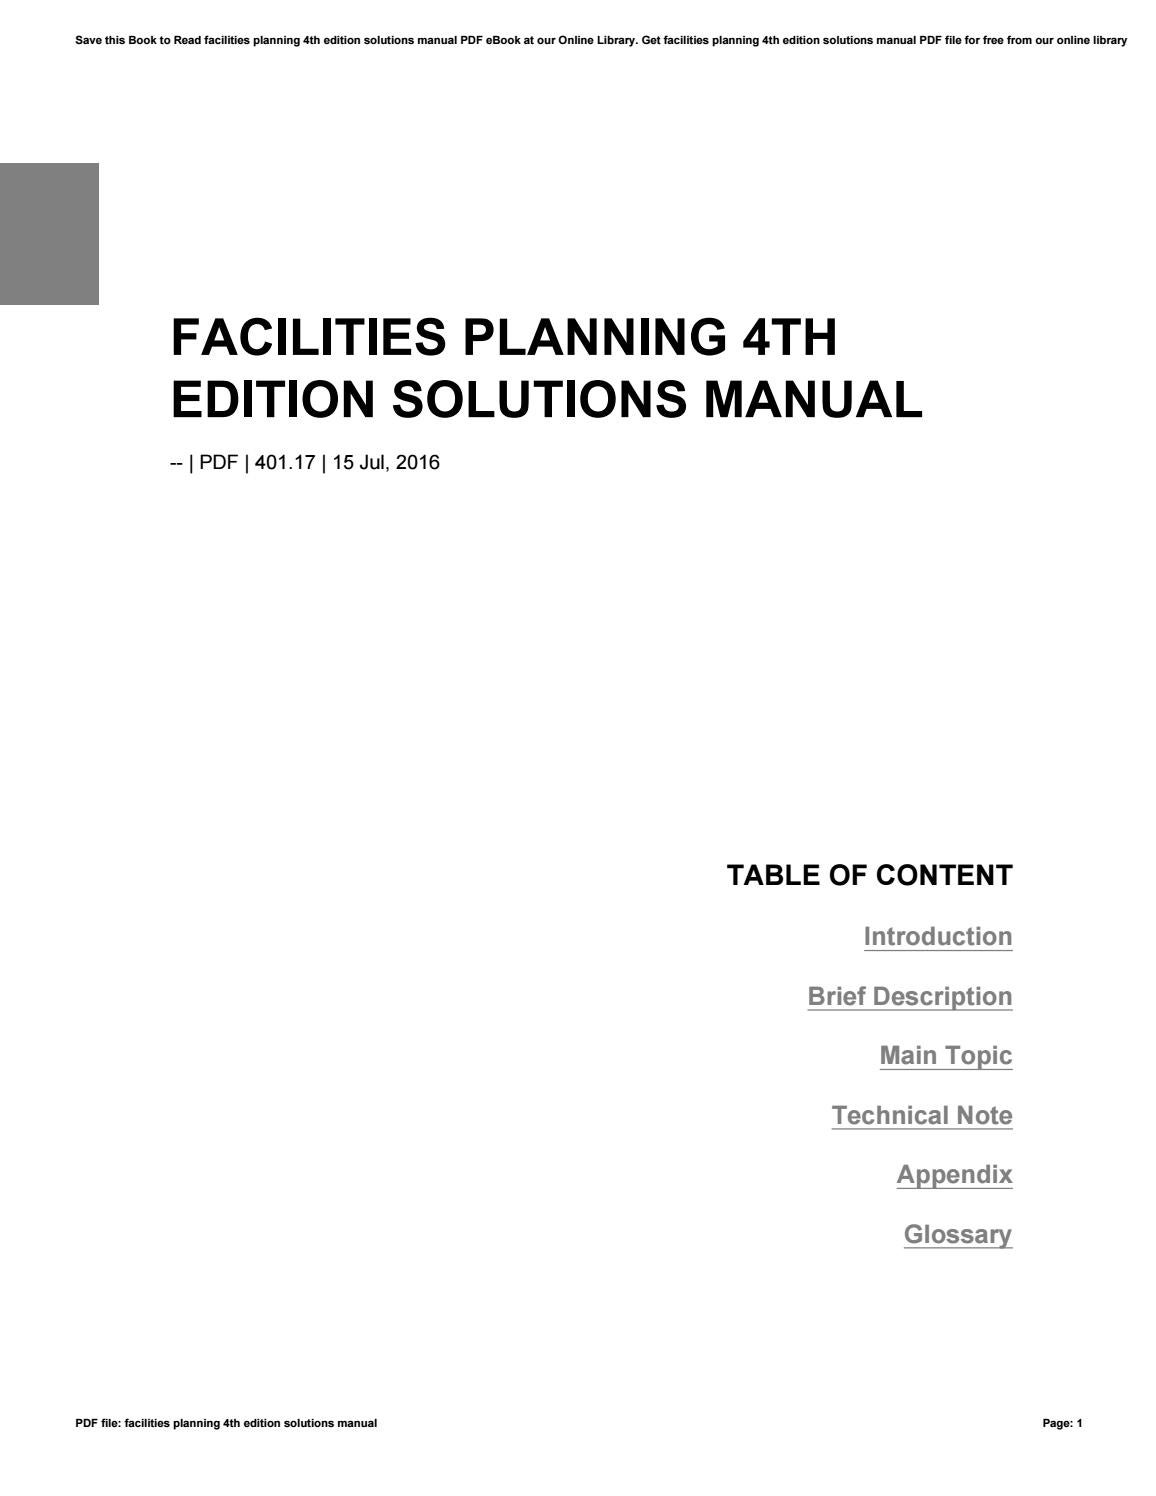 Facilities planning 4th edition pdf download.